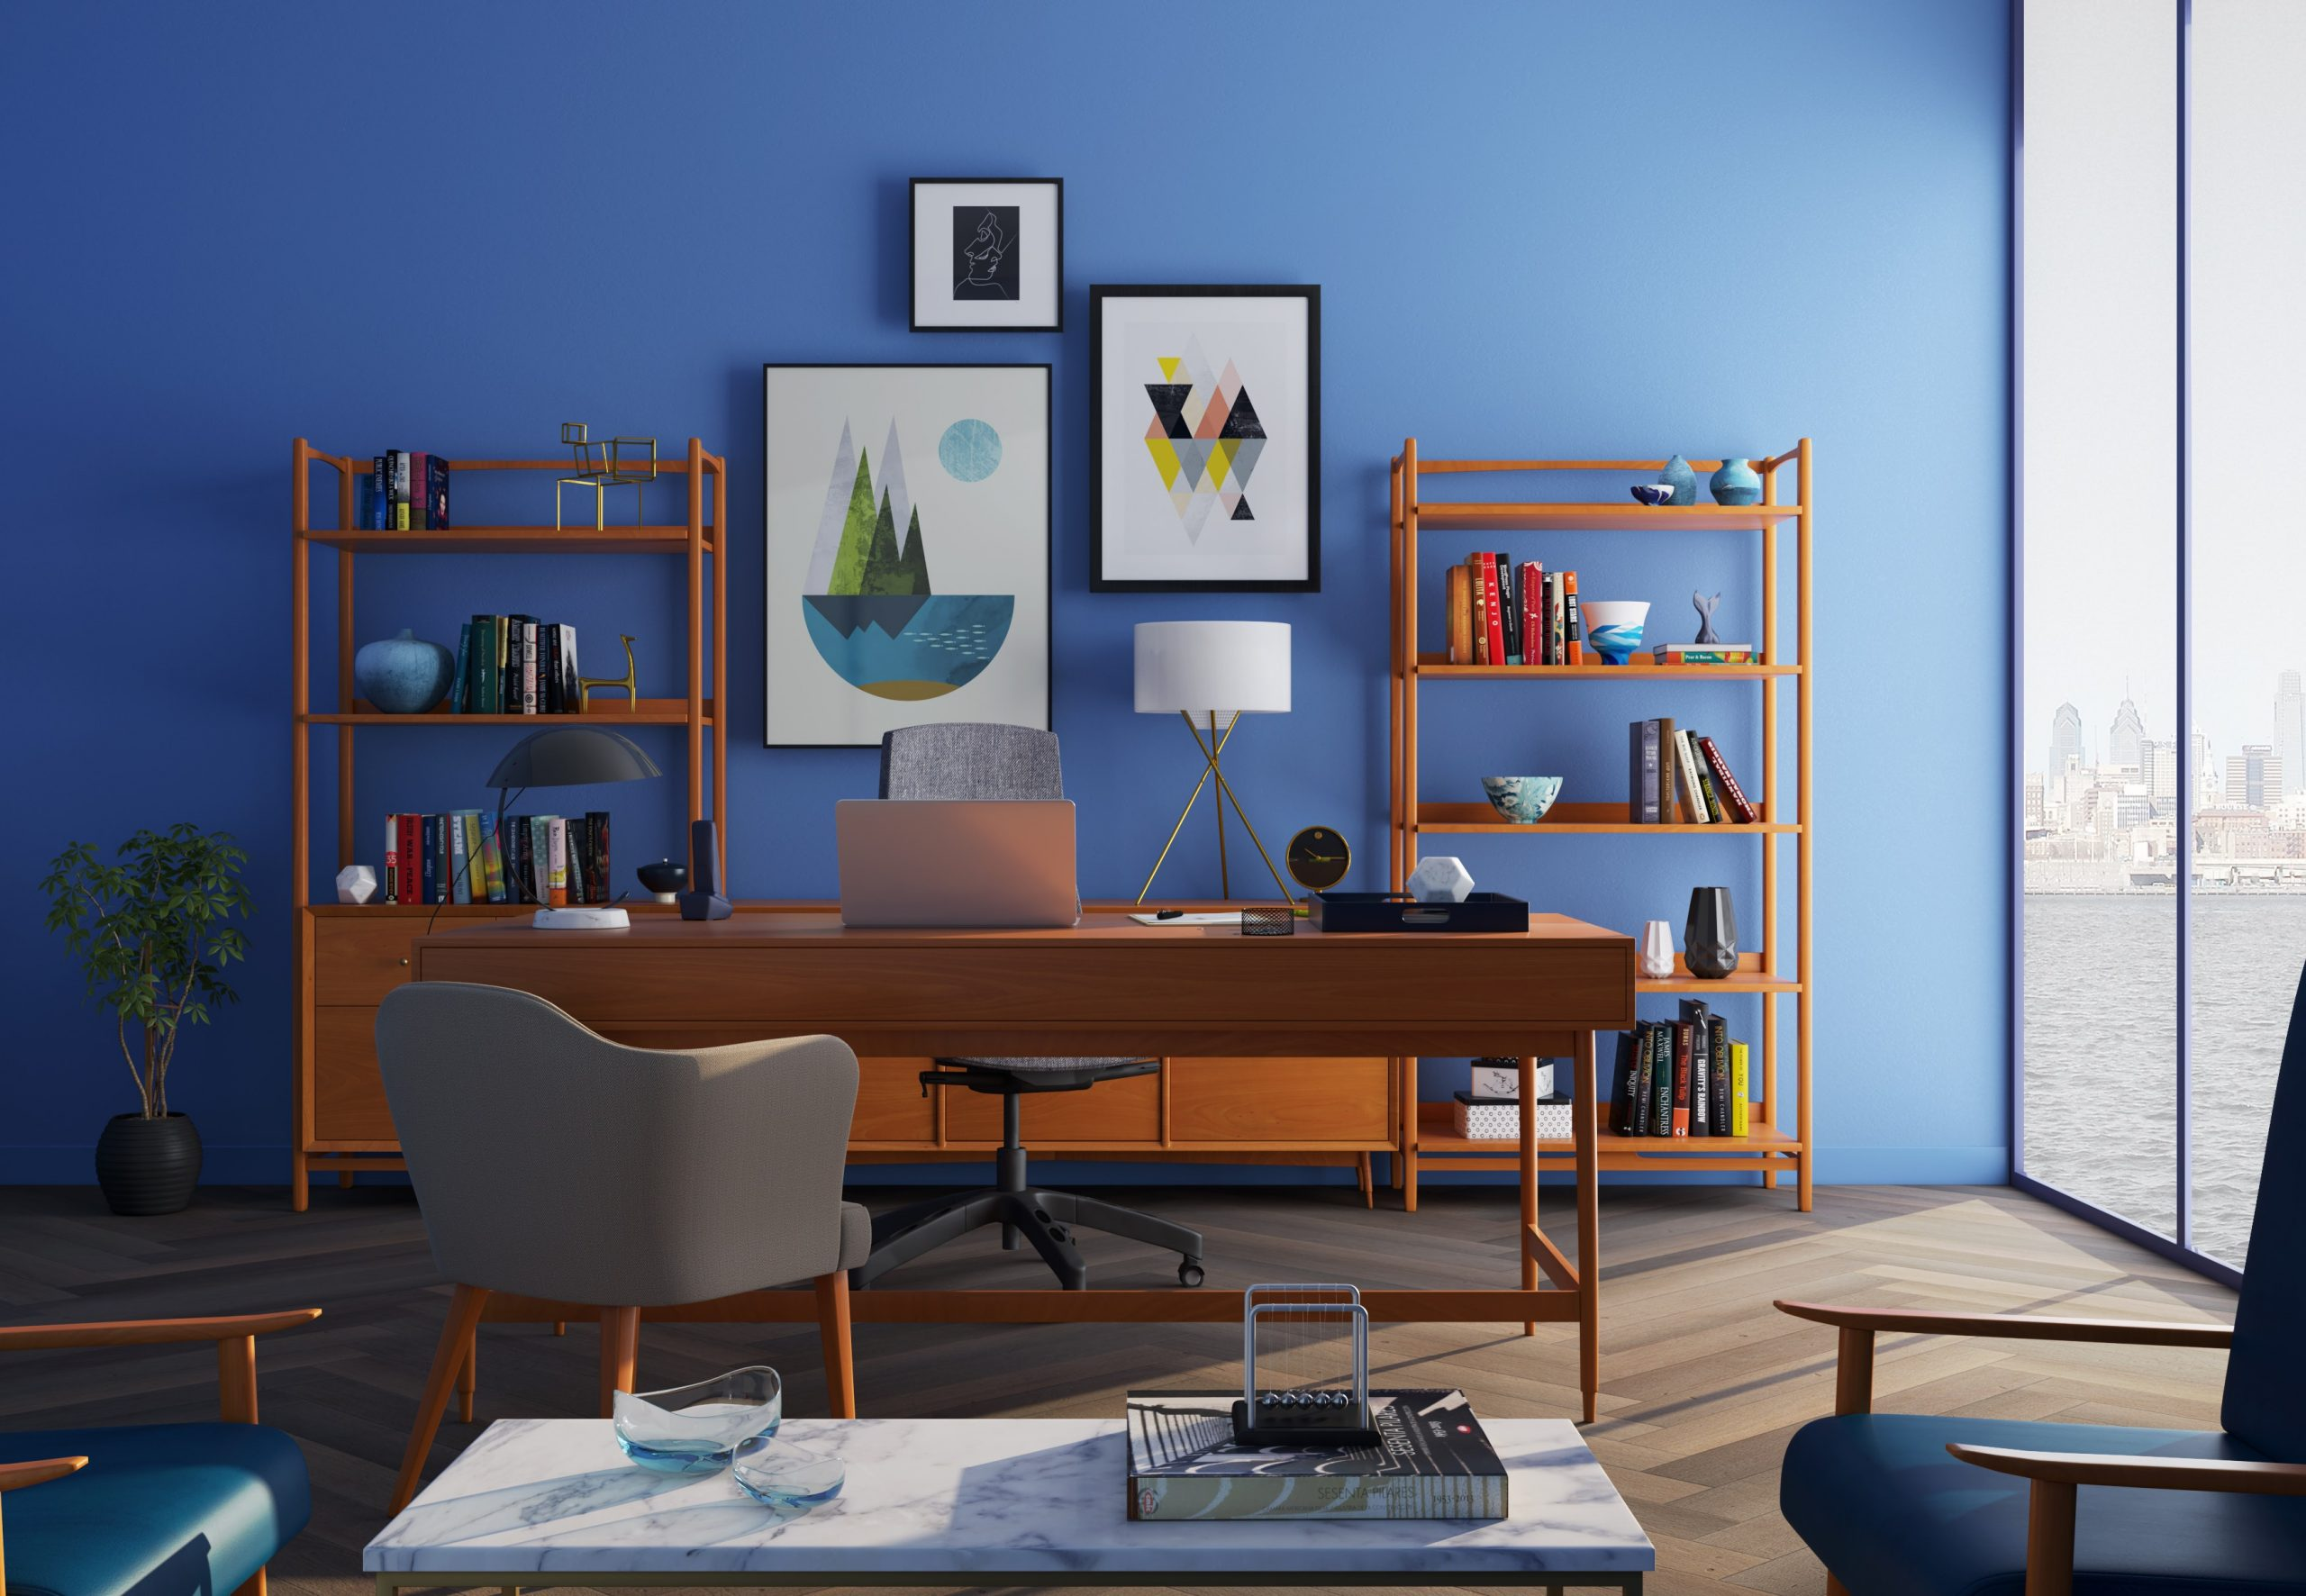 Getting Started With Home Design